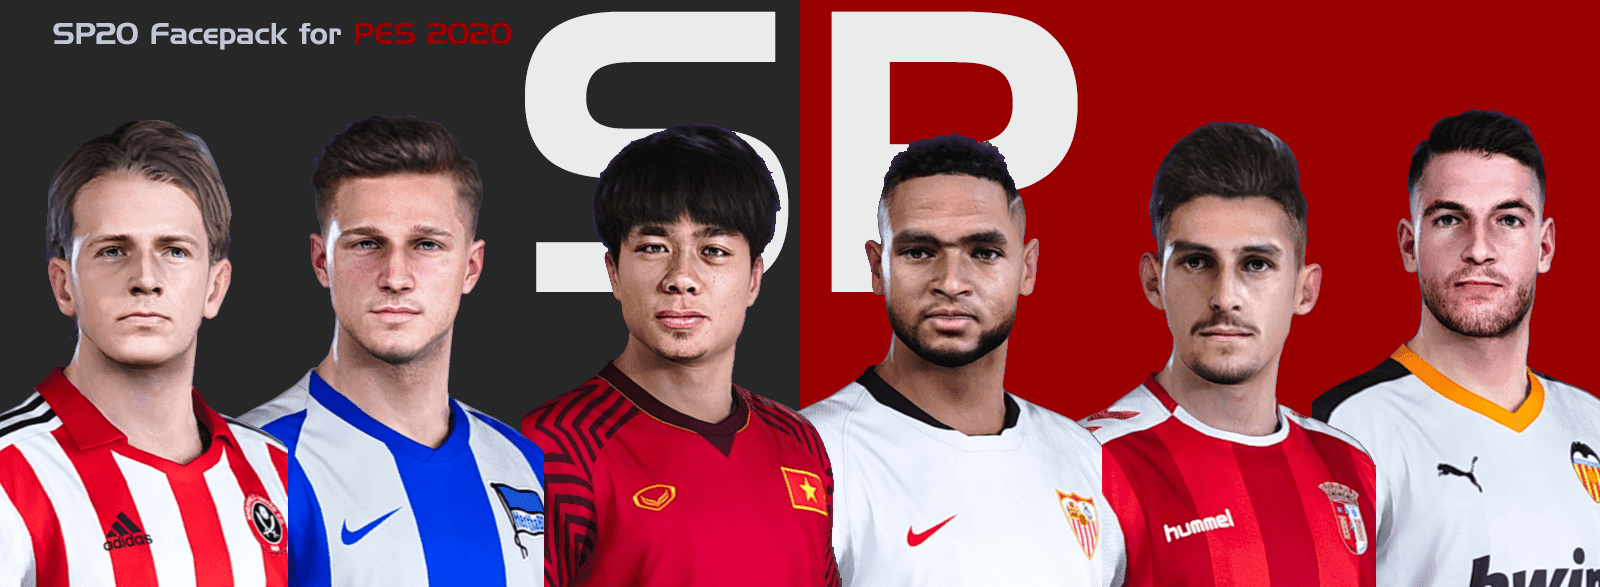 PES2020 - SmokePatch Face Pack - Facepack PES 2020 mới nhất